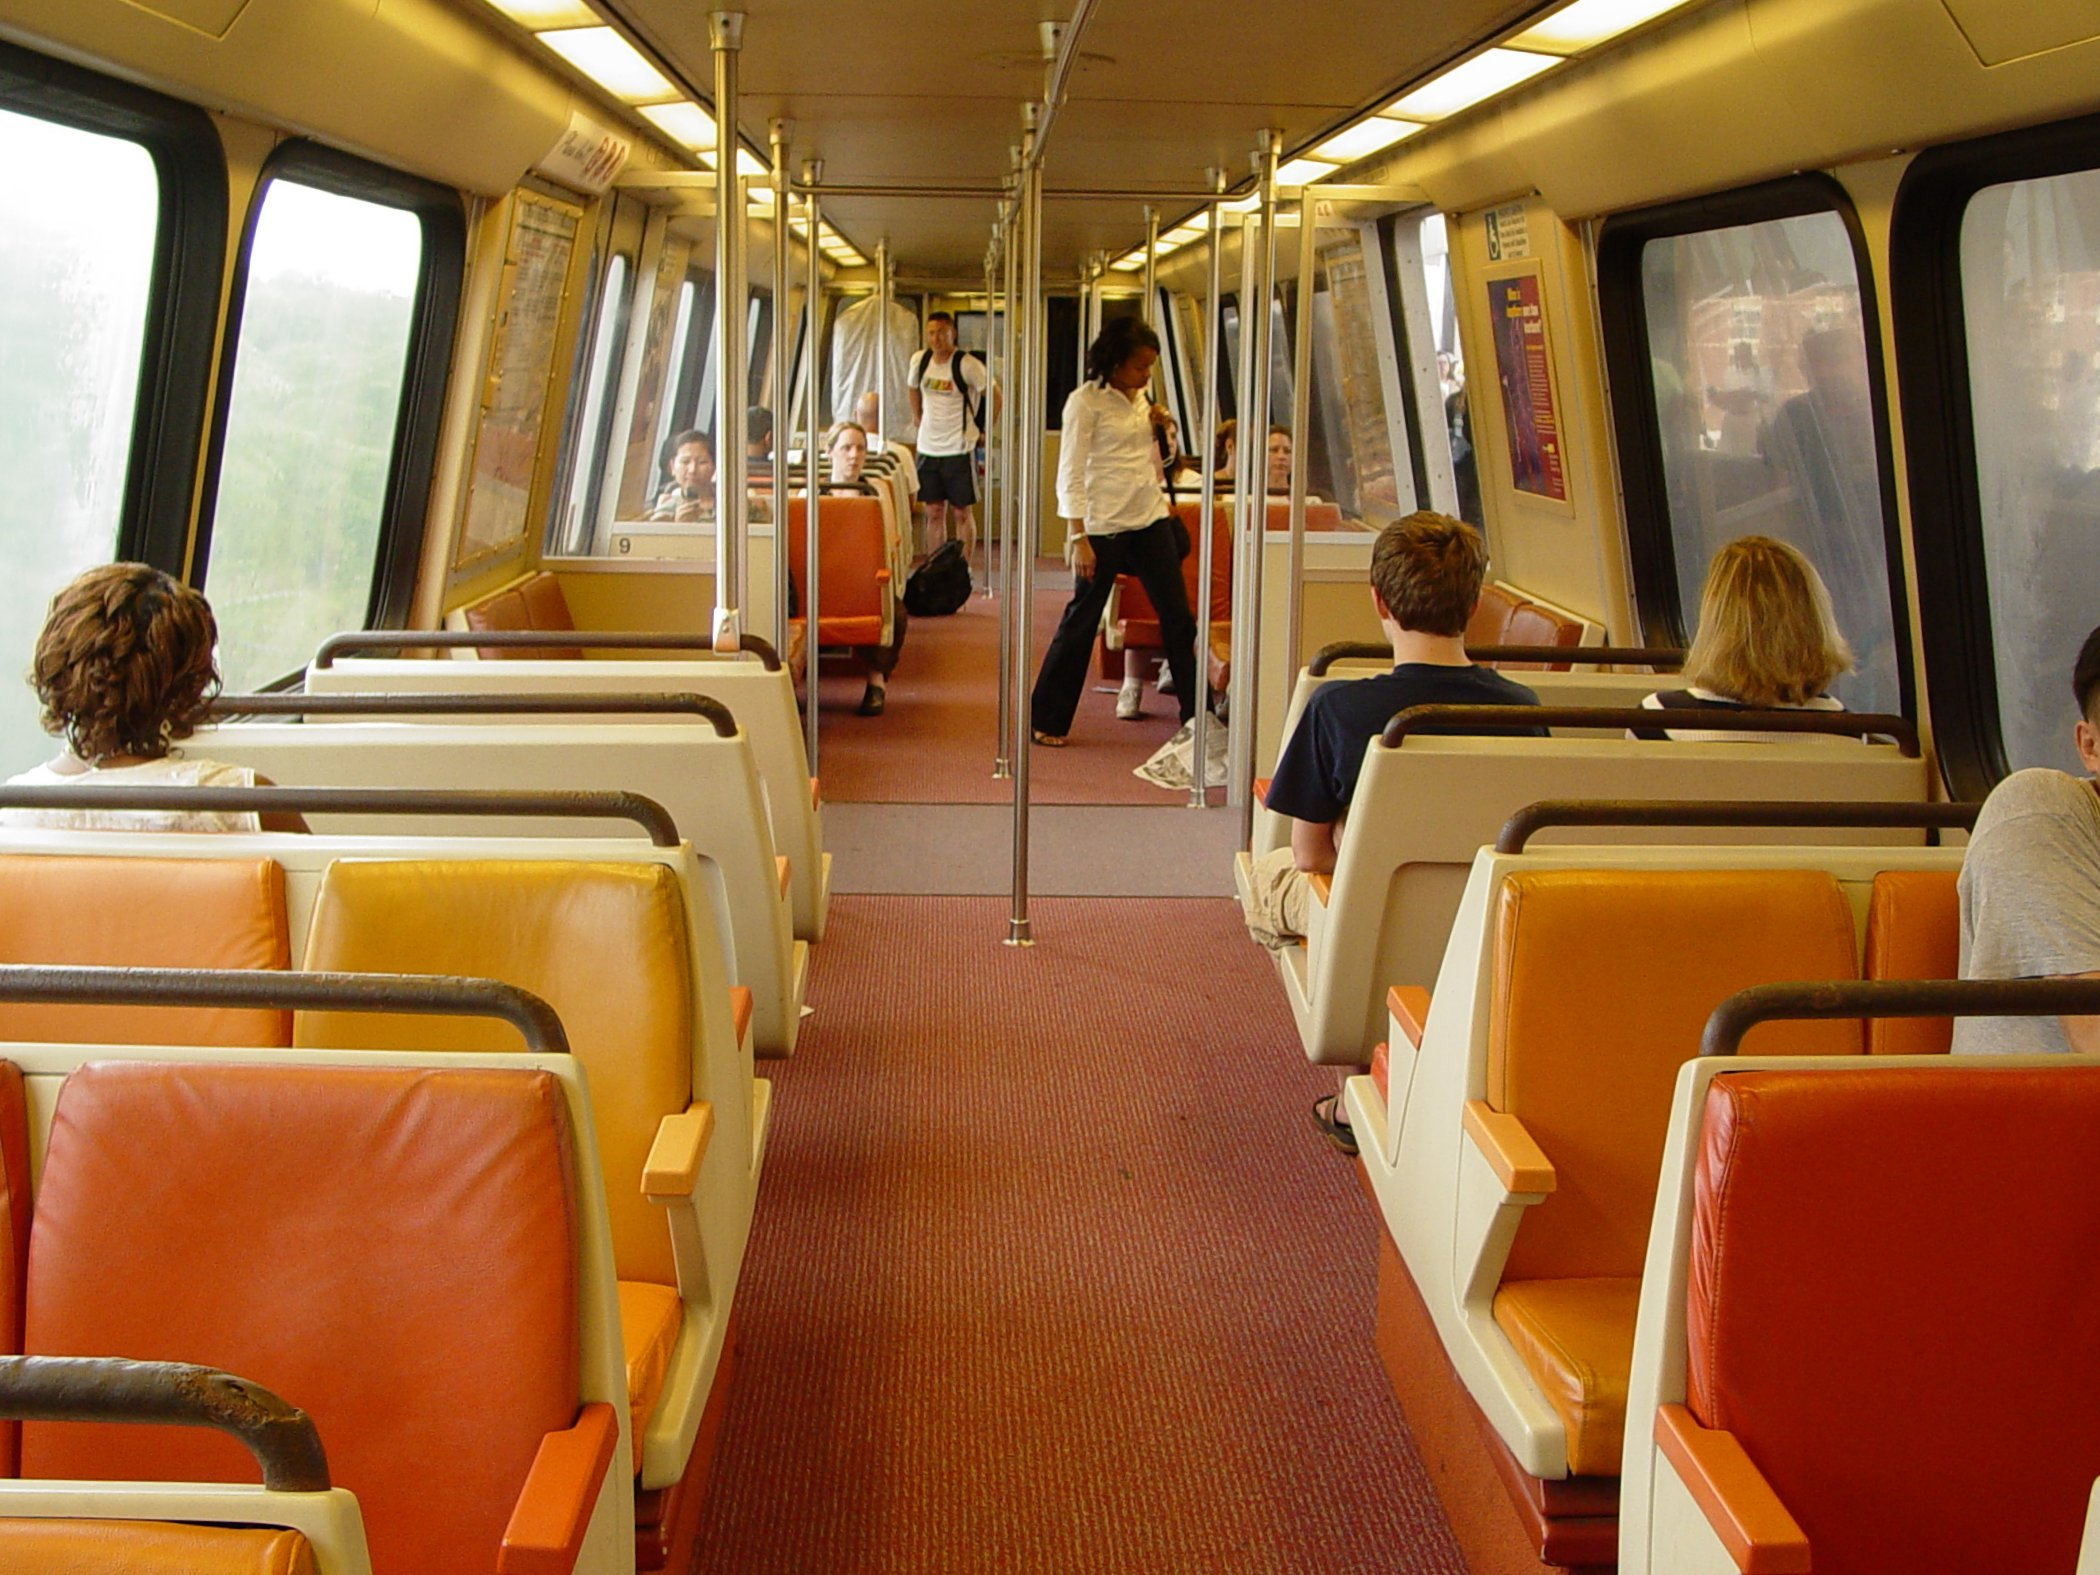 The Schumin Web 187 Metro Cars With Black Floors Wool Seats